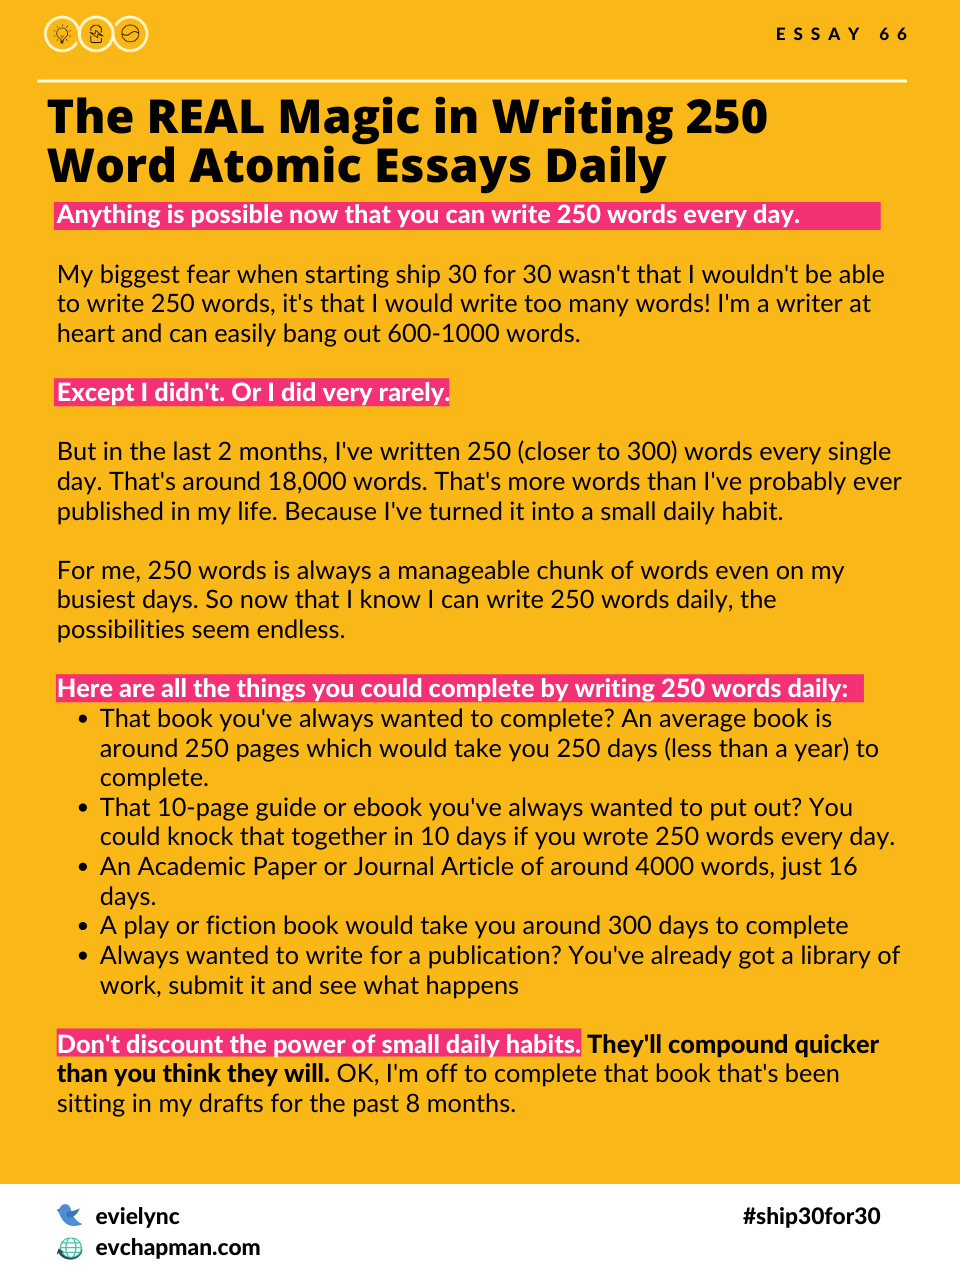 The Real Magic In Writing 250 Words Atomic Essays Daily